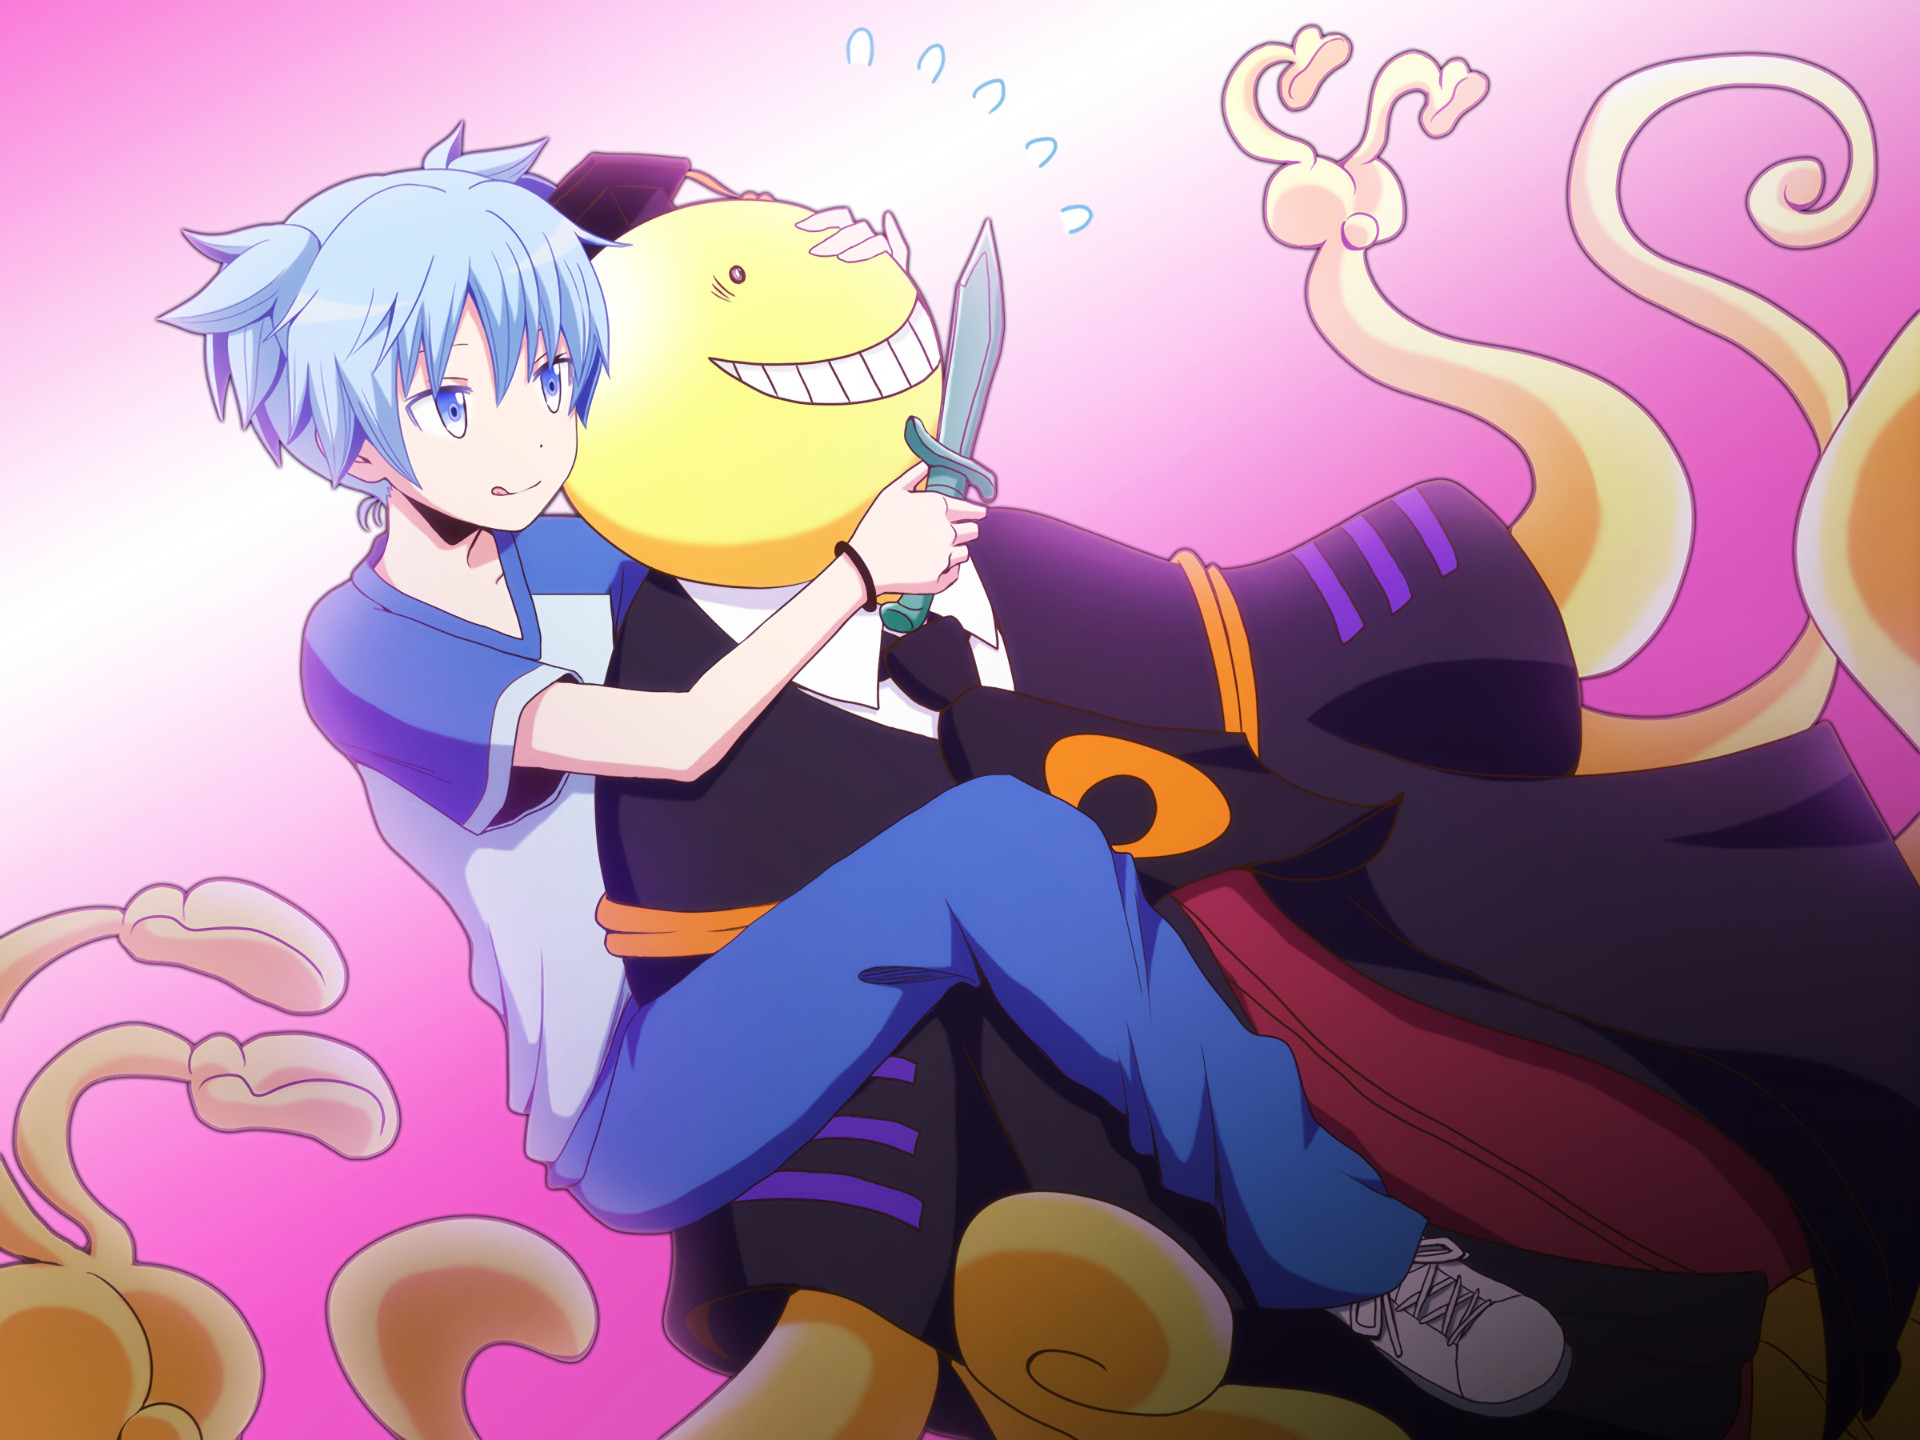 1920x1440 Anime Assassination Classroom Koro-sensei Nagisa Shiota Wallpaper